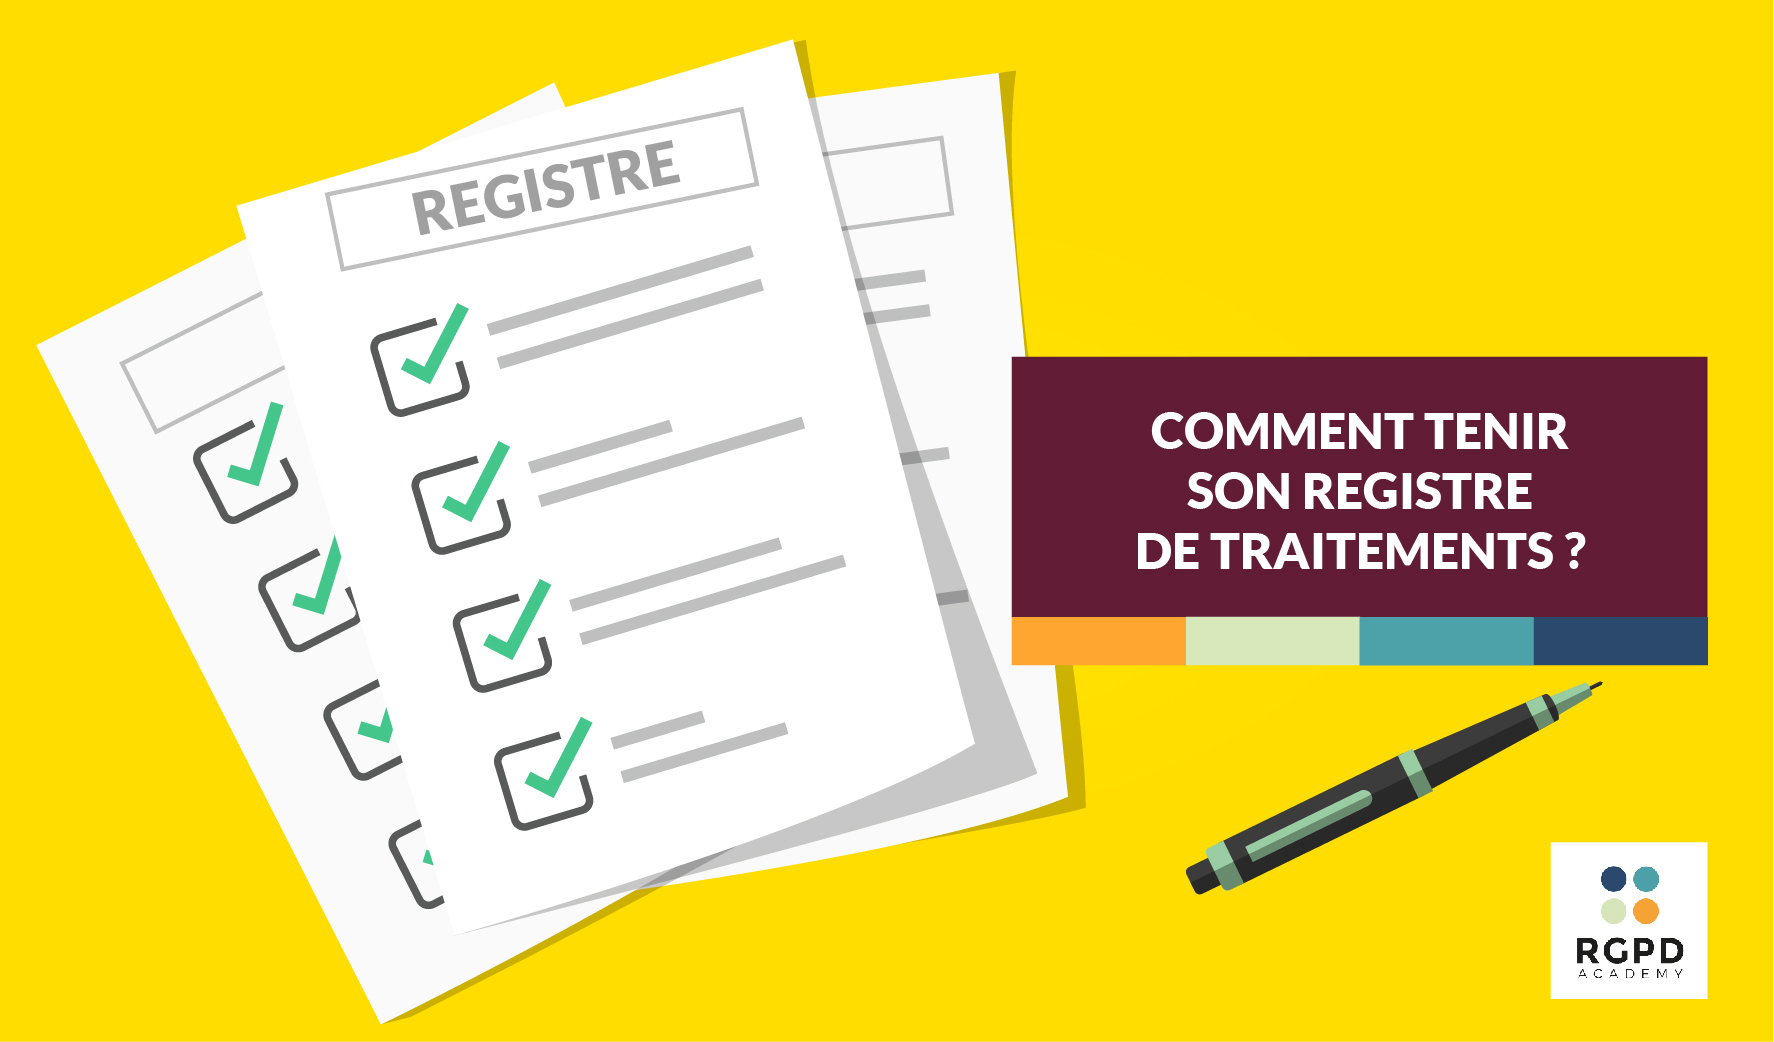 Comment tenir son registre de traitements ?